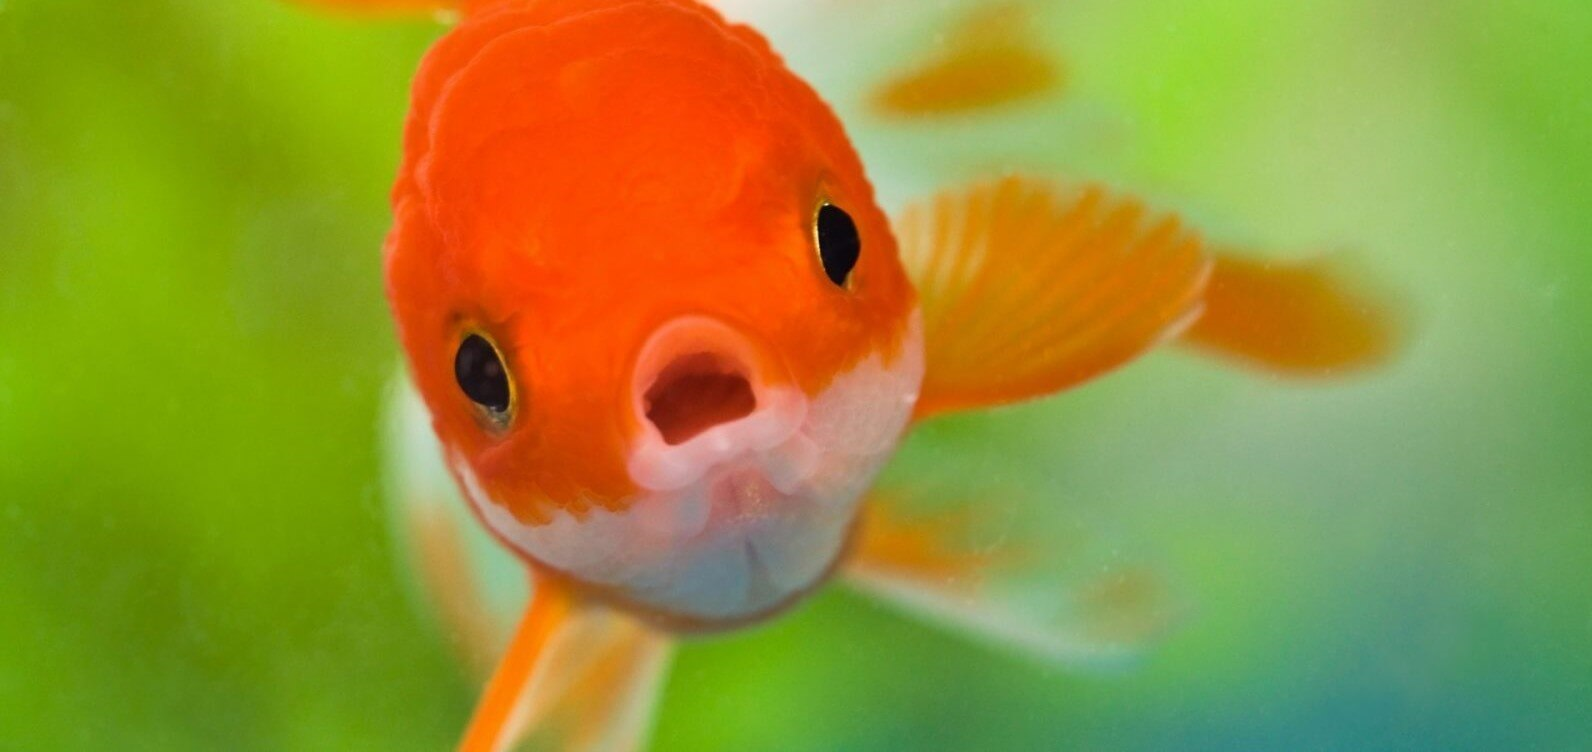 Goldfish with an open mouth